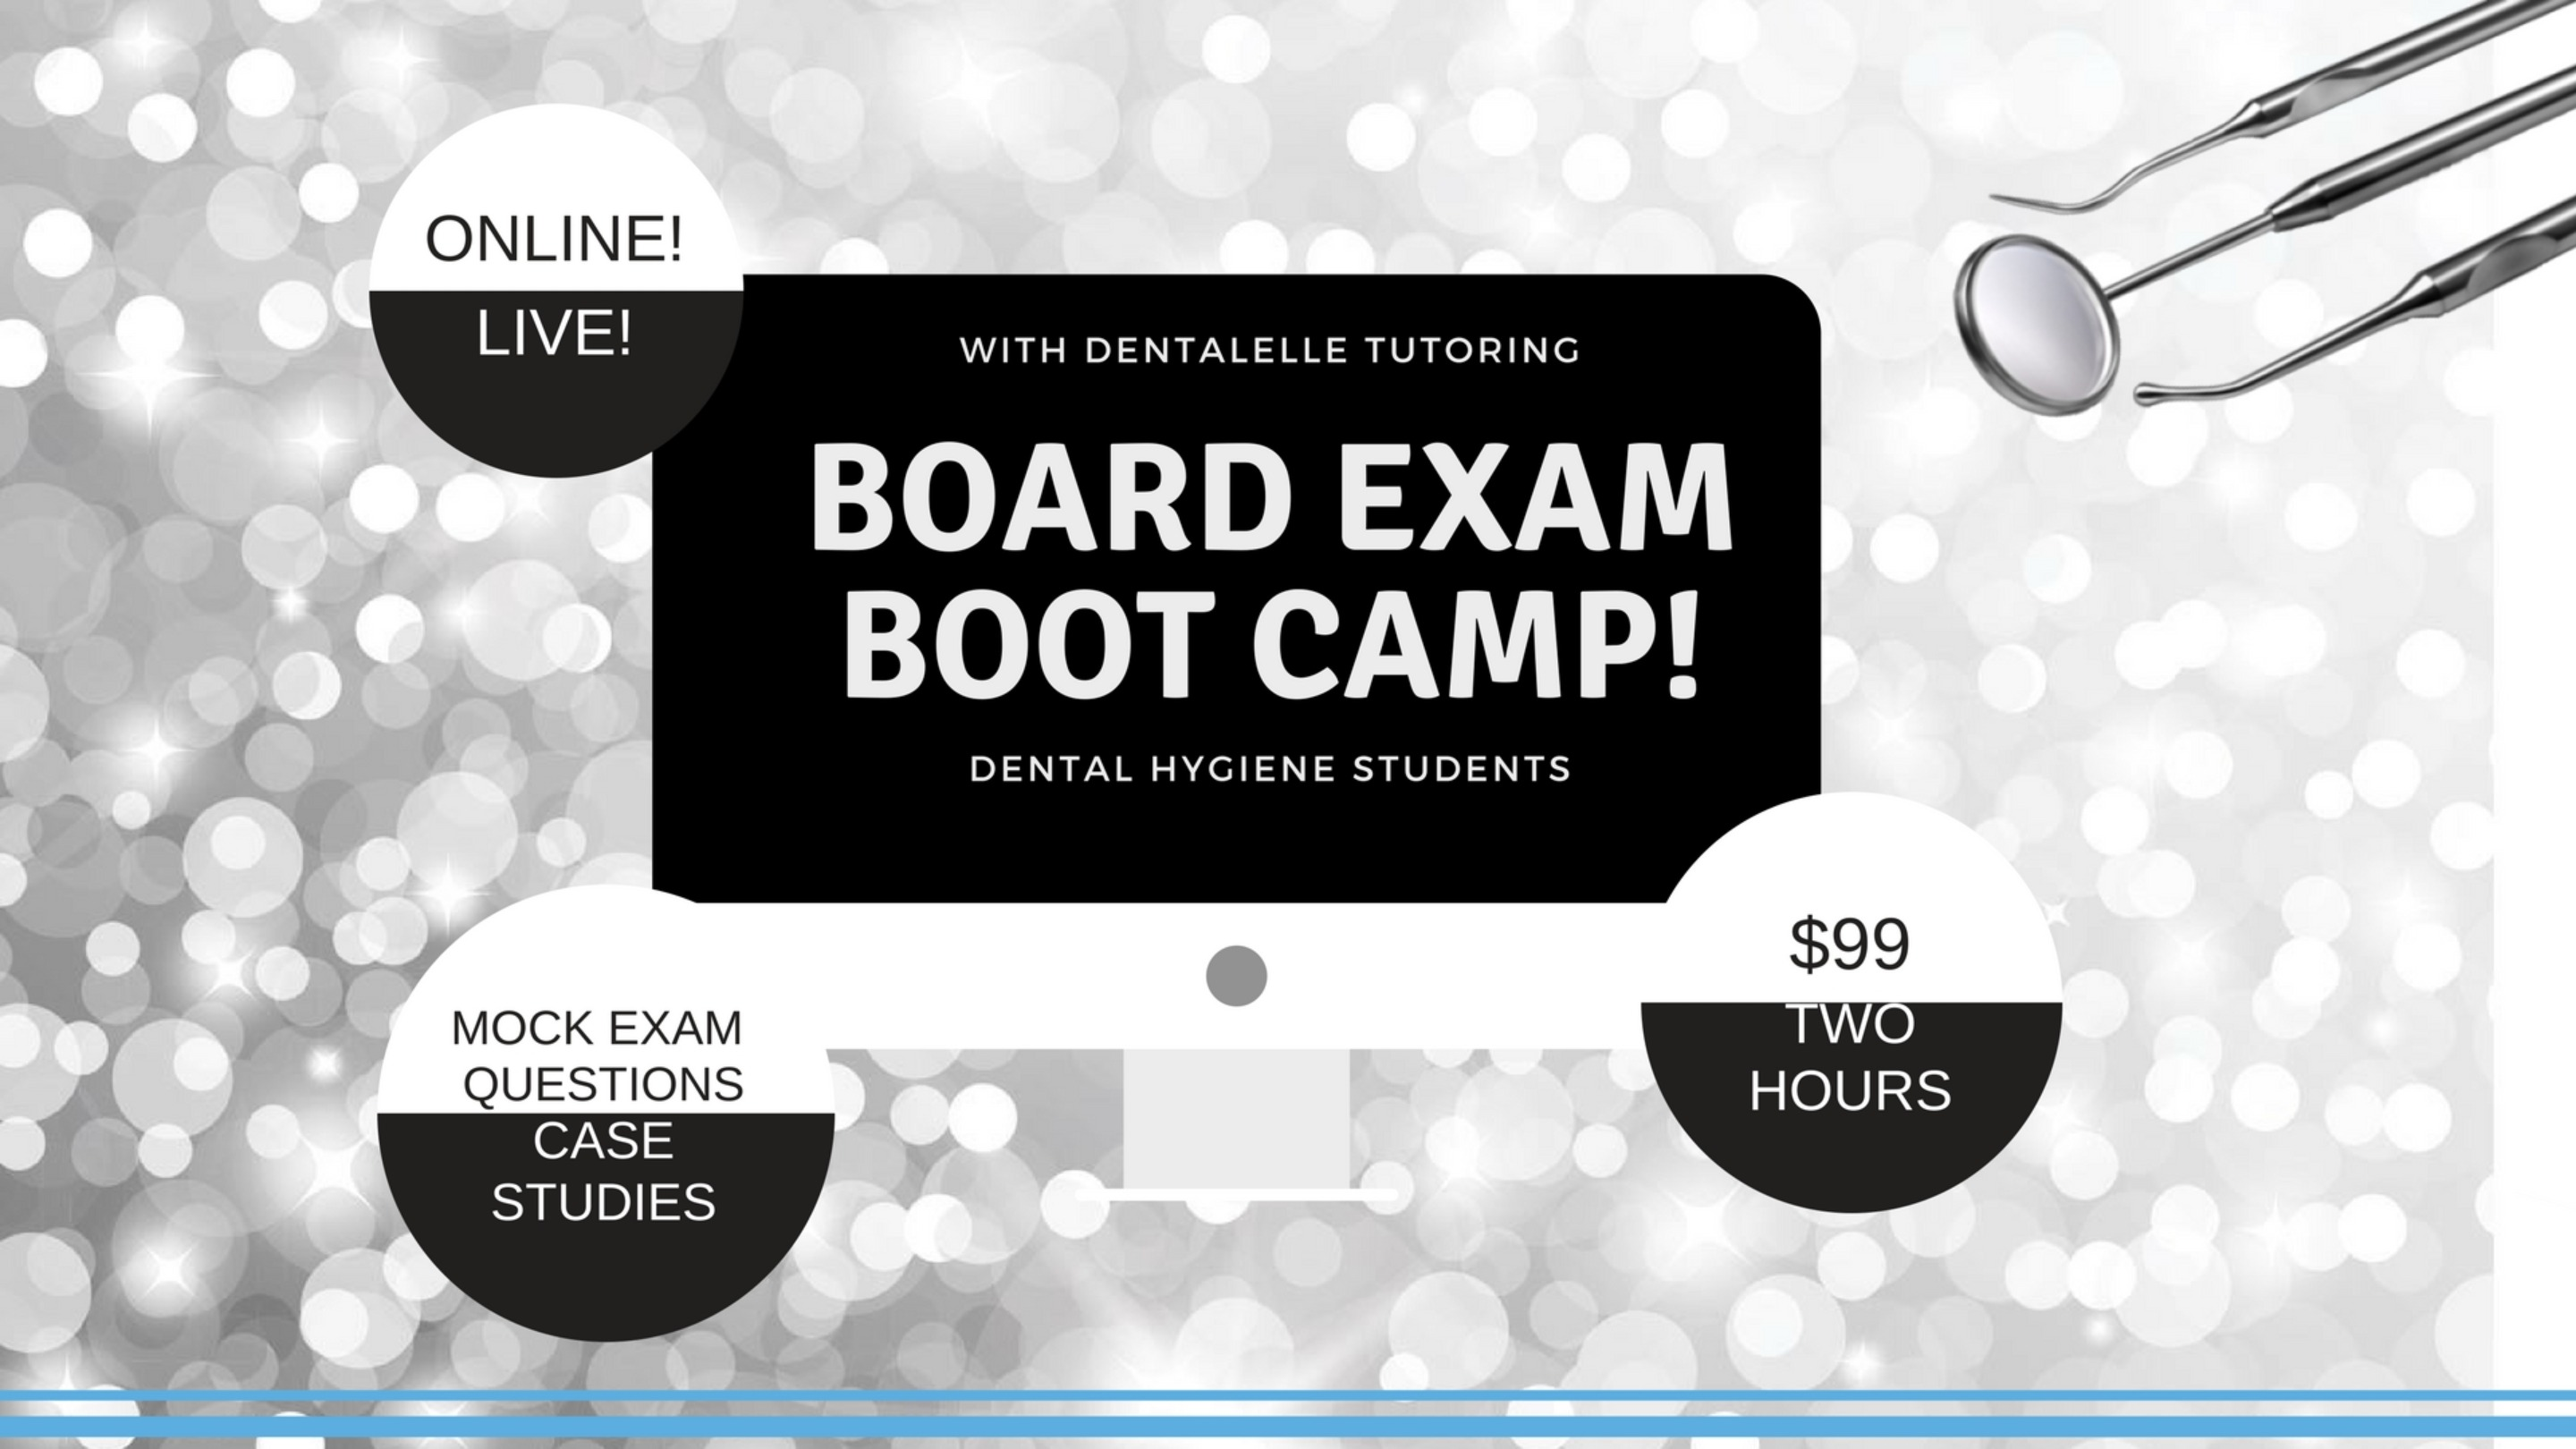 Part I Recorded Board Exam Boot Camp + Video for Dental Hygiene Students